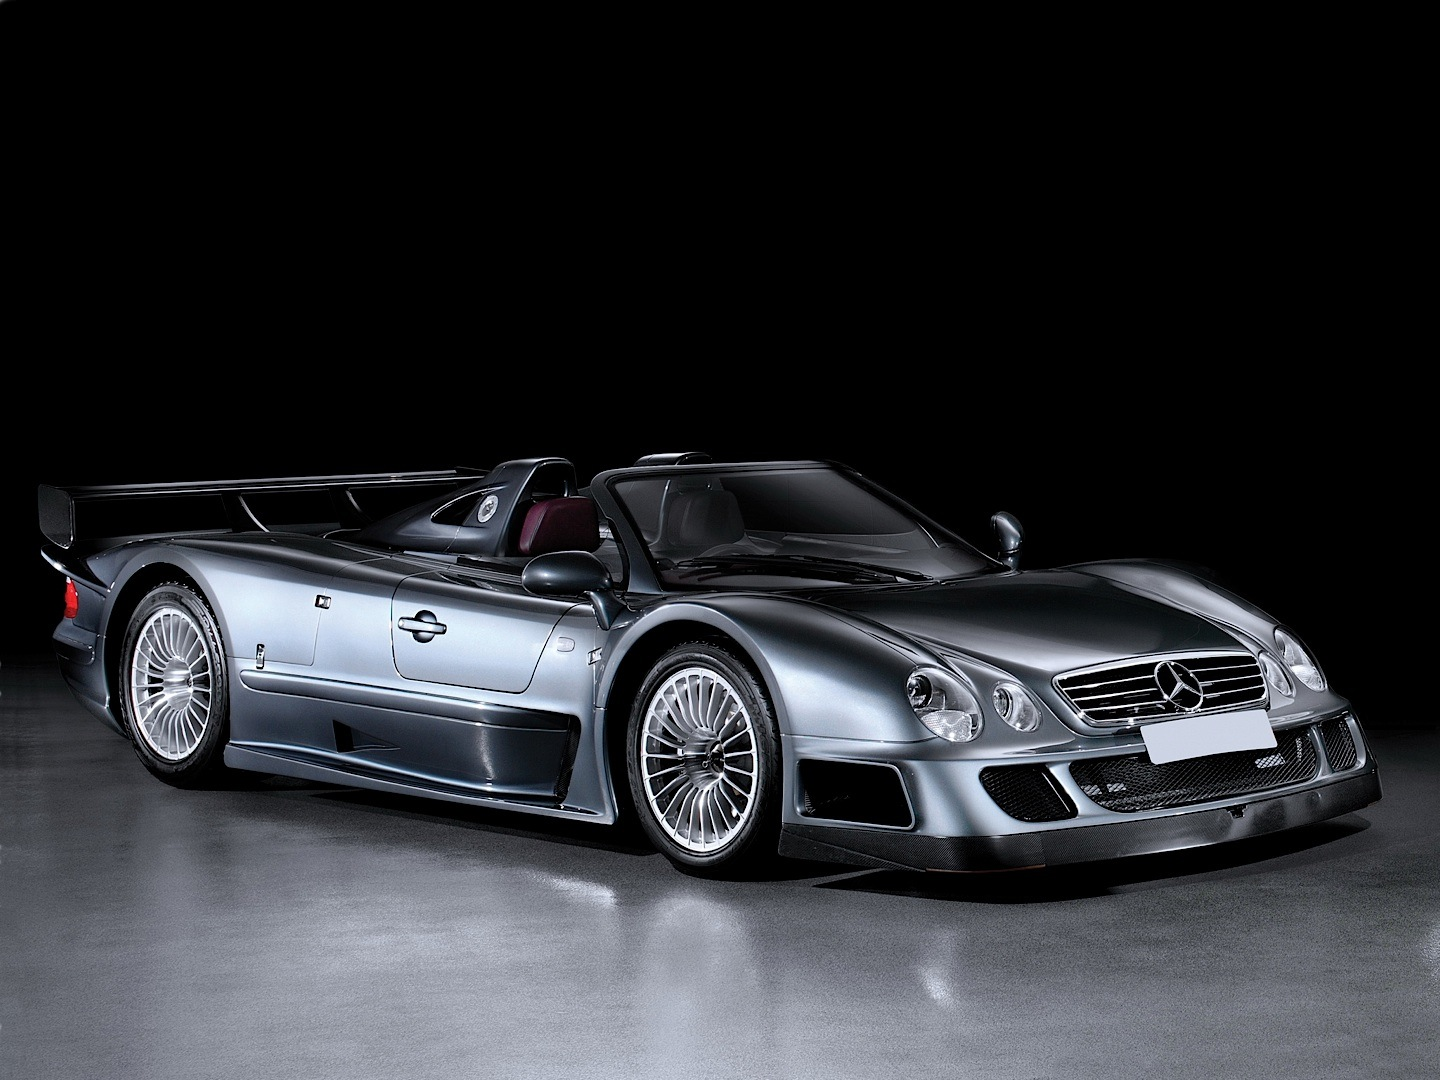 ultra rare clk gtr roadster up for sale autoevolution. Black Bedroom Furniture Sets. Home Design Ideas